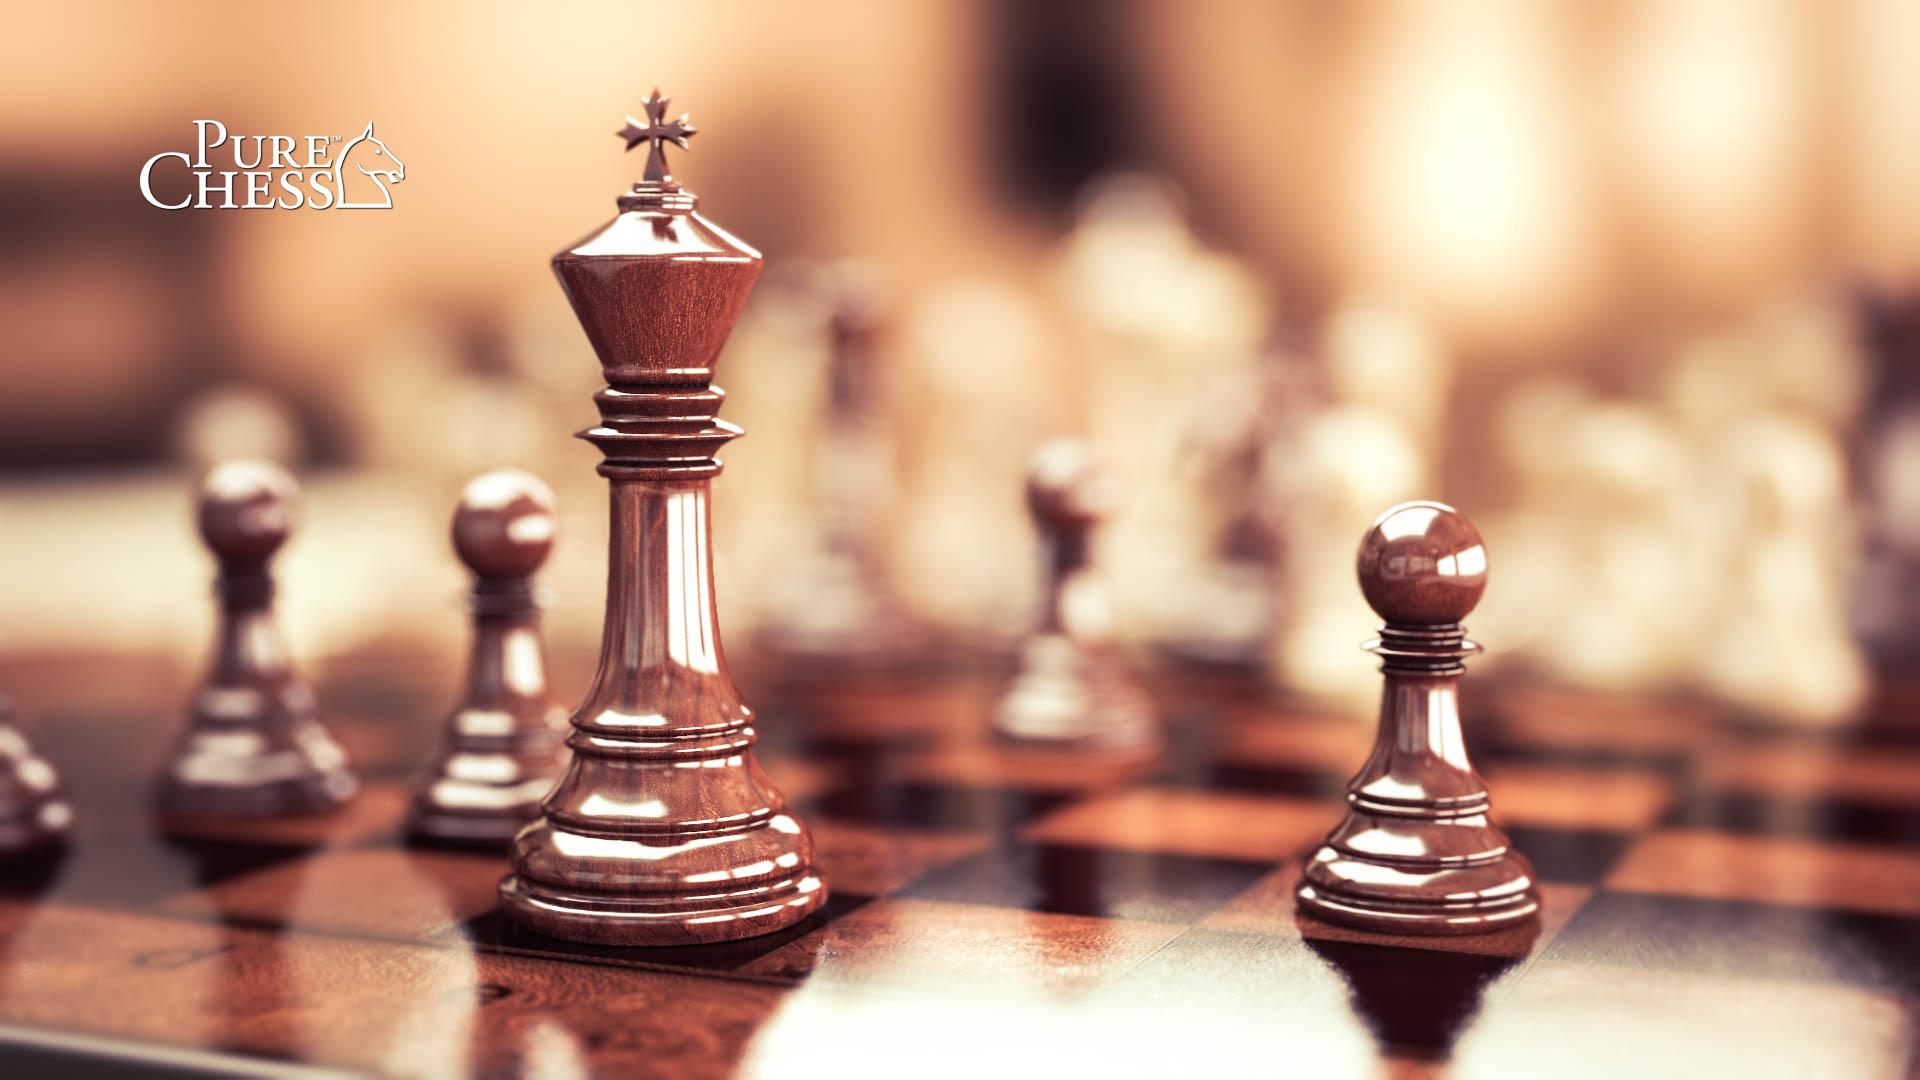 Chess Wallpaper Chess Game Hd Wallpapers: Chess Game Full HD Wallpapers & Desktop Backgrounds (High